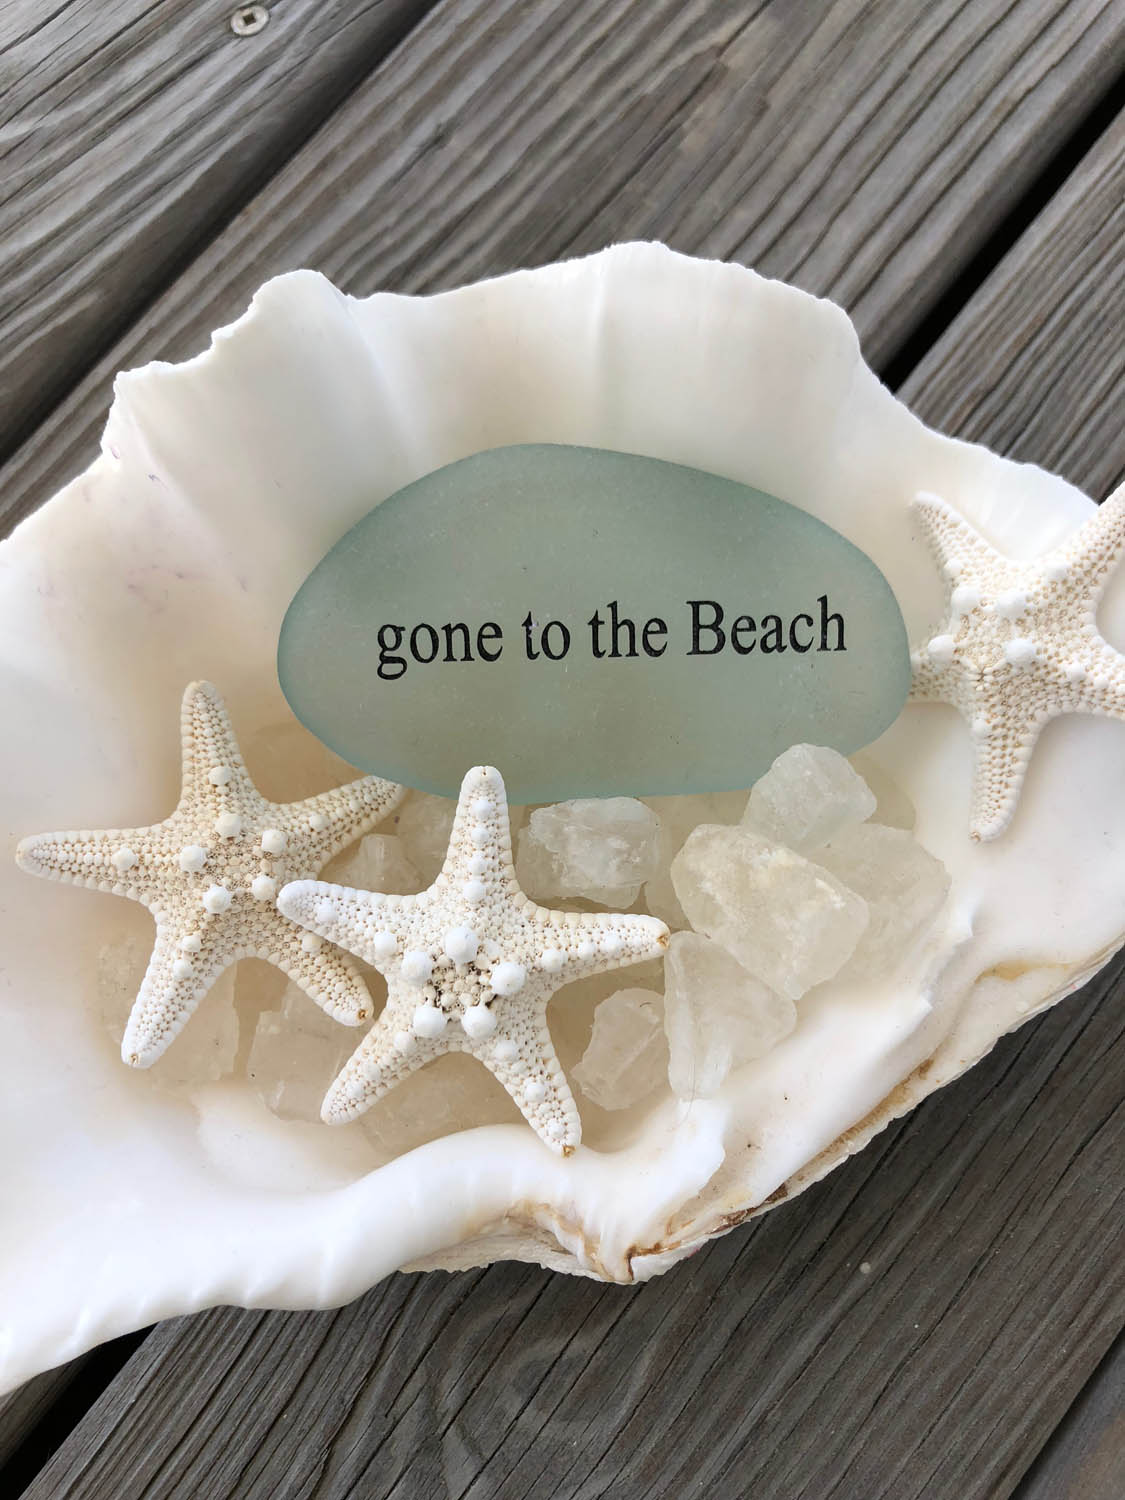 Gone to the Beach; starfish and sea glass in shell